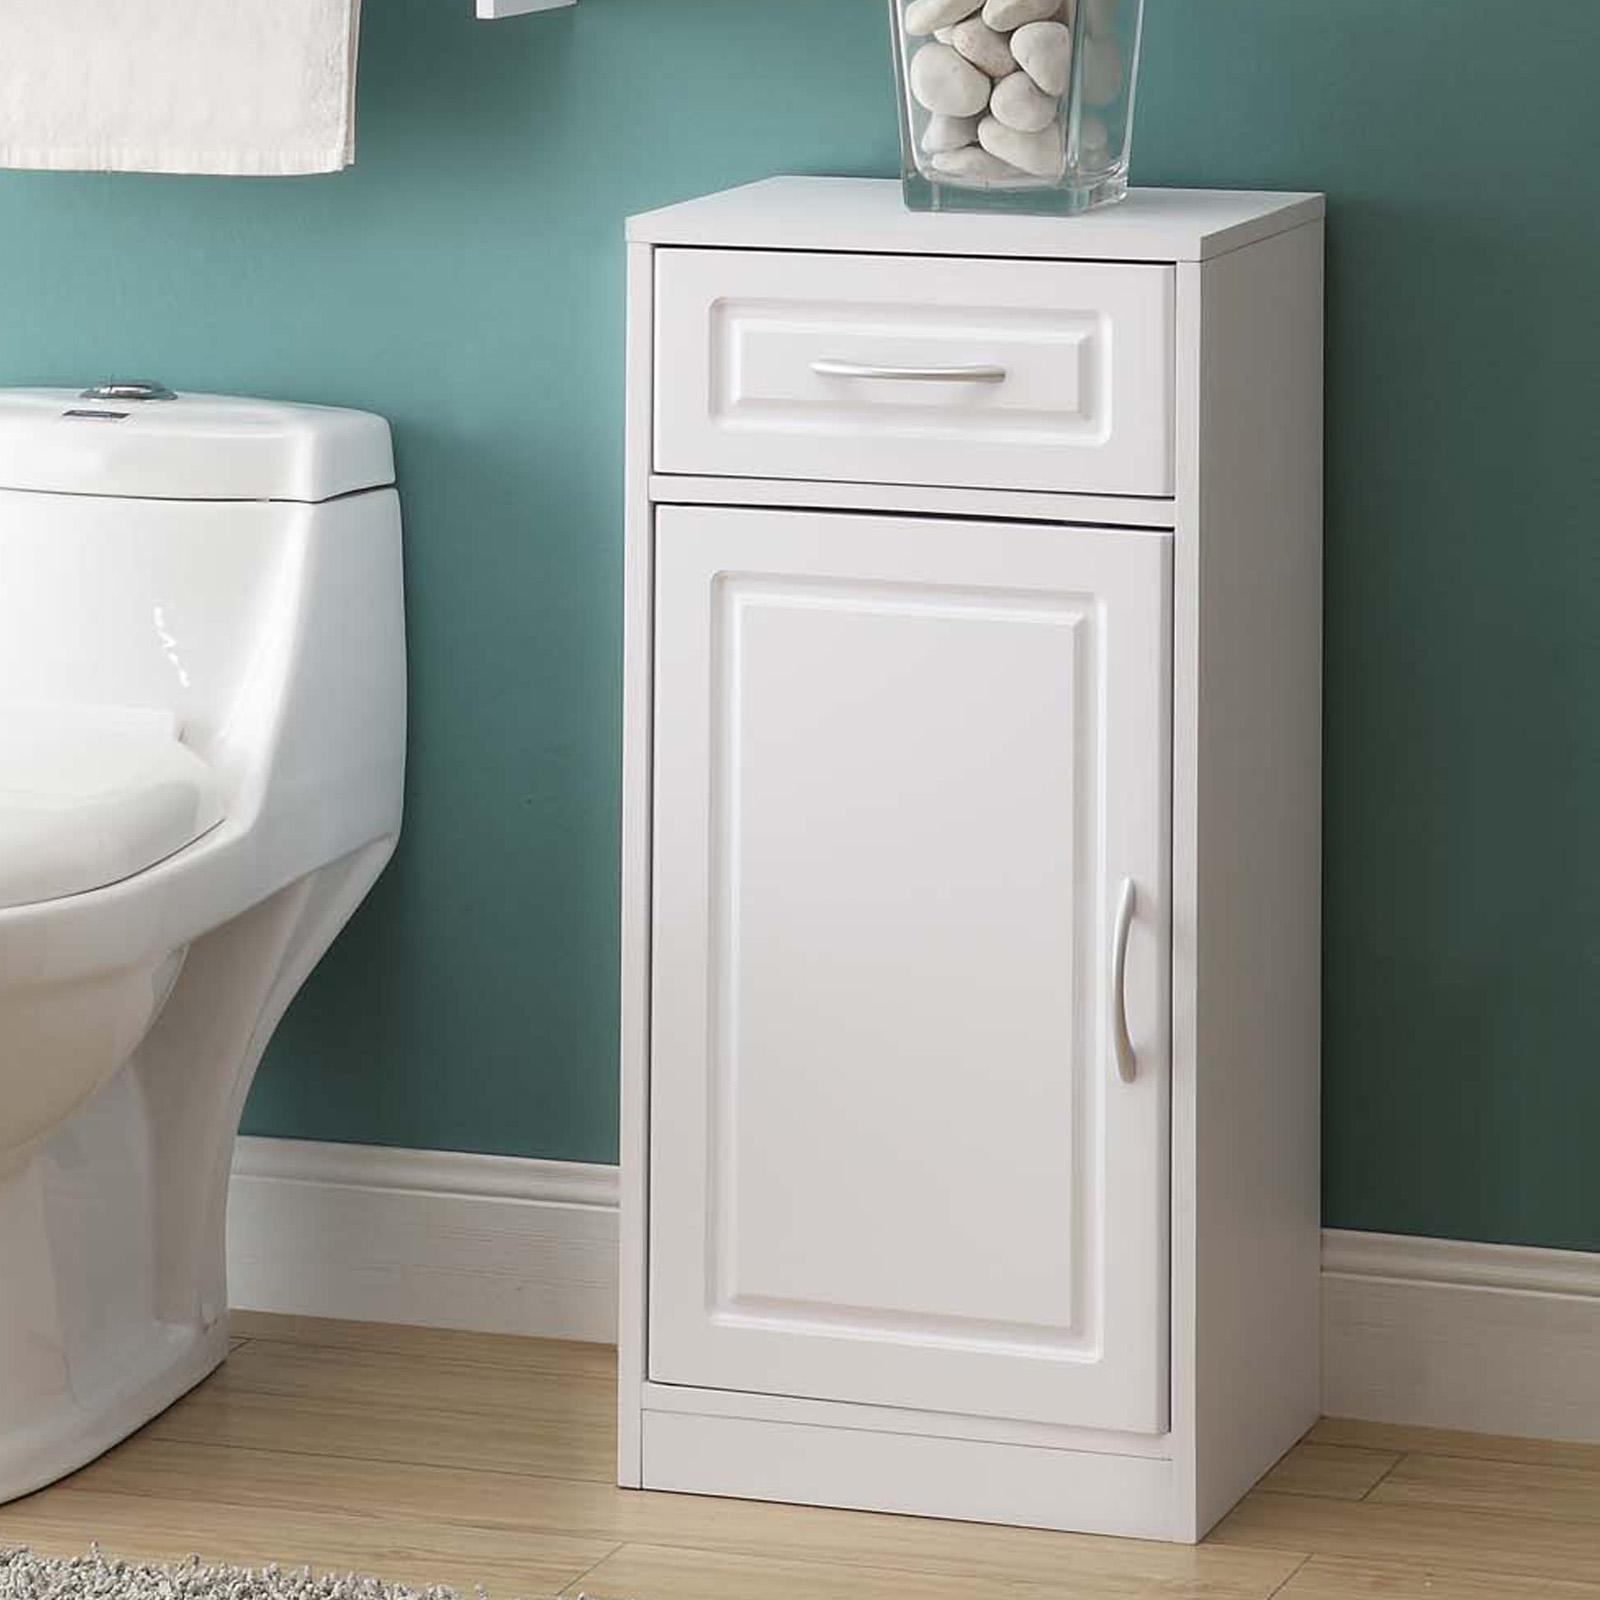 4d concepts white bathroom base cabinet with one door - Small floor cabinet for bathroom ...